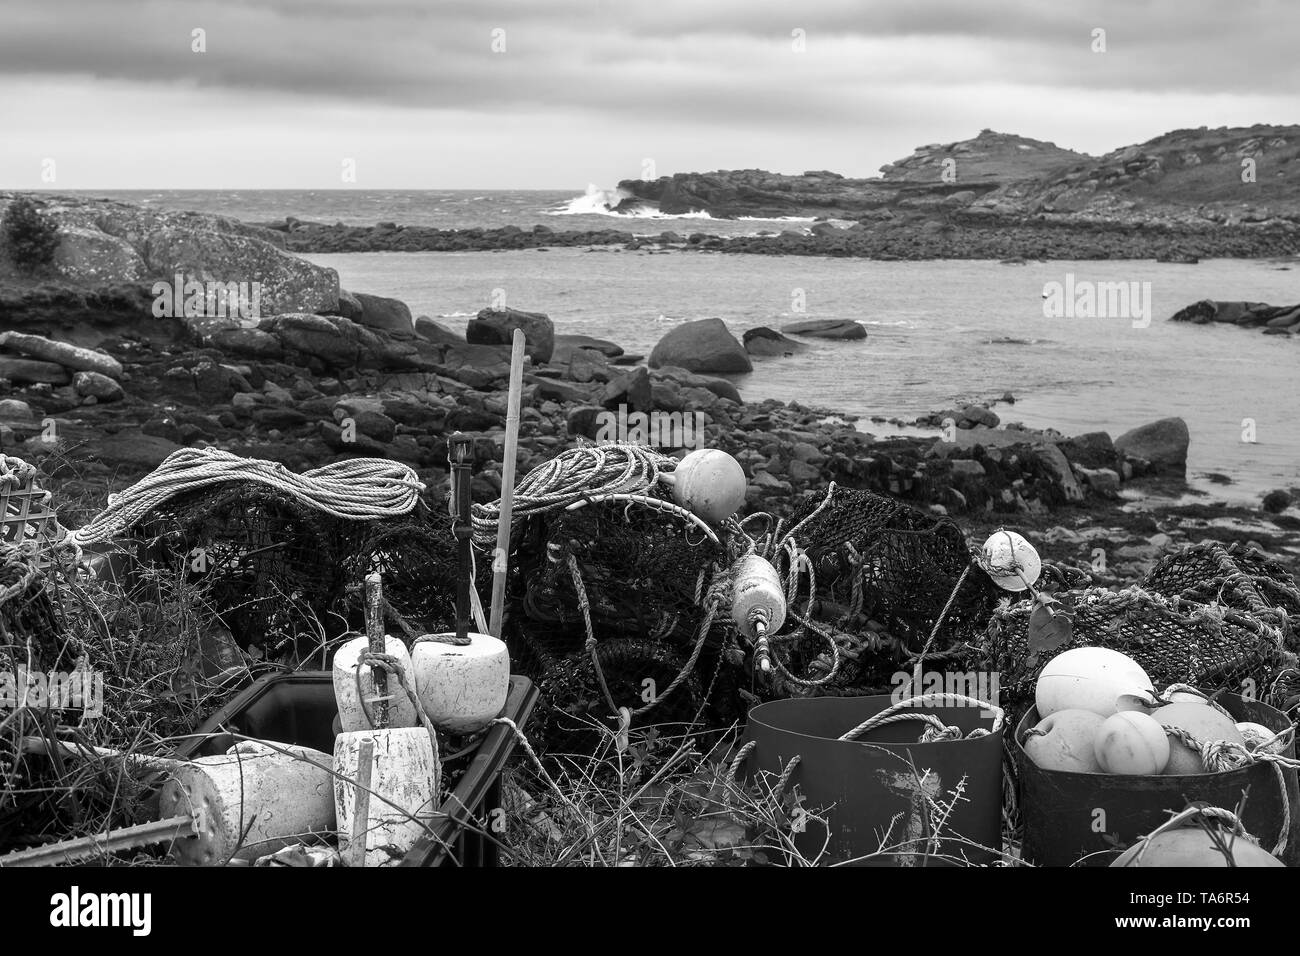 Lobster pots and other fishing gear, Porth Hellick, St. Mary's, Isles of Scilly, UK: black and white version - Stock Image